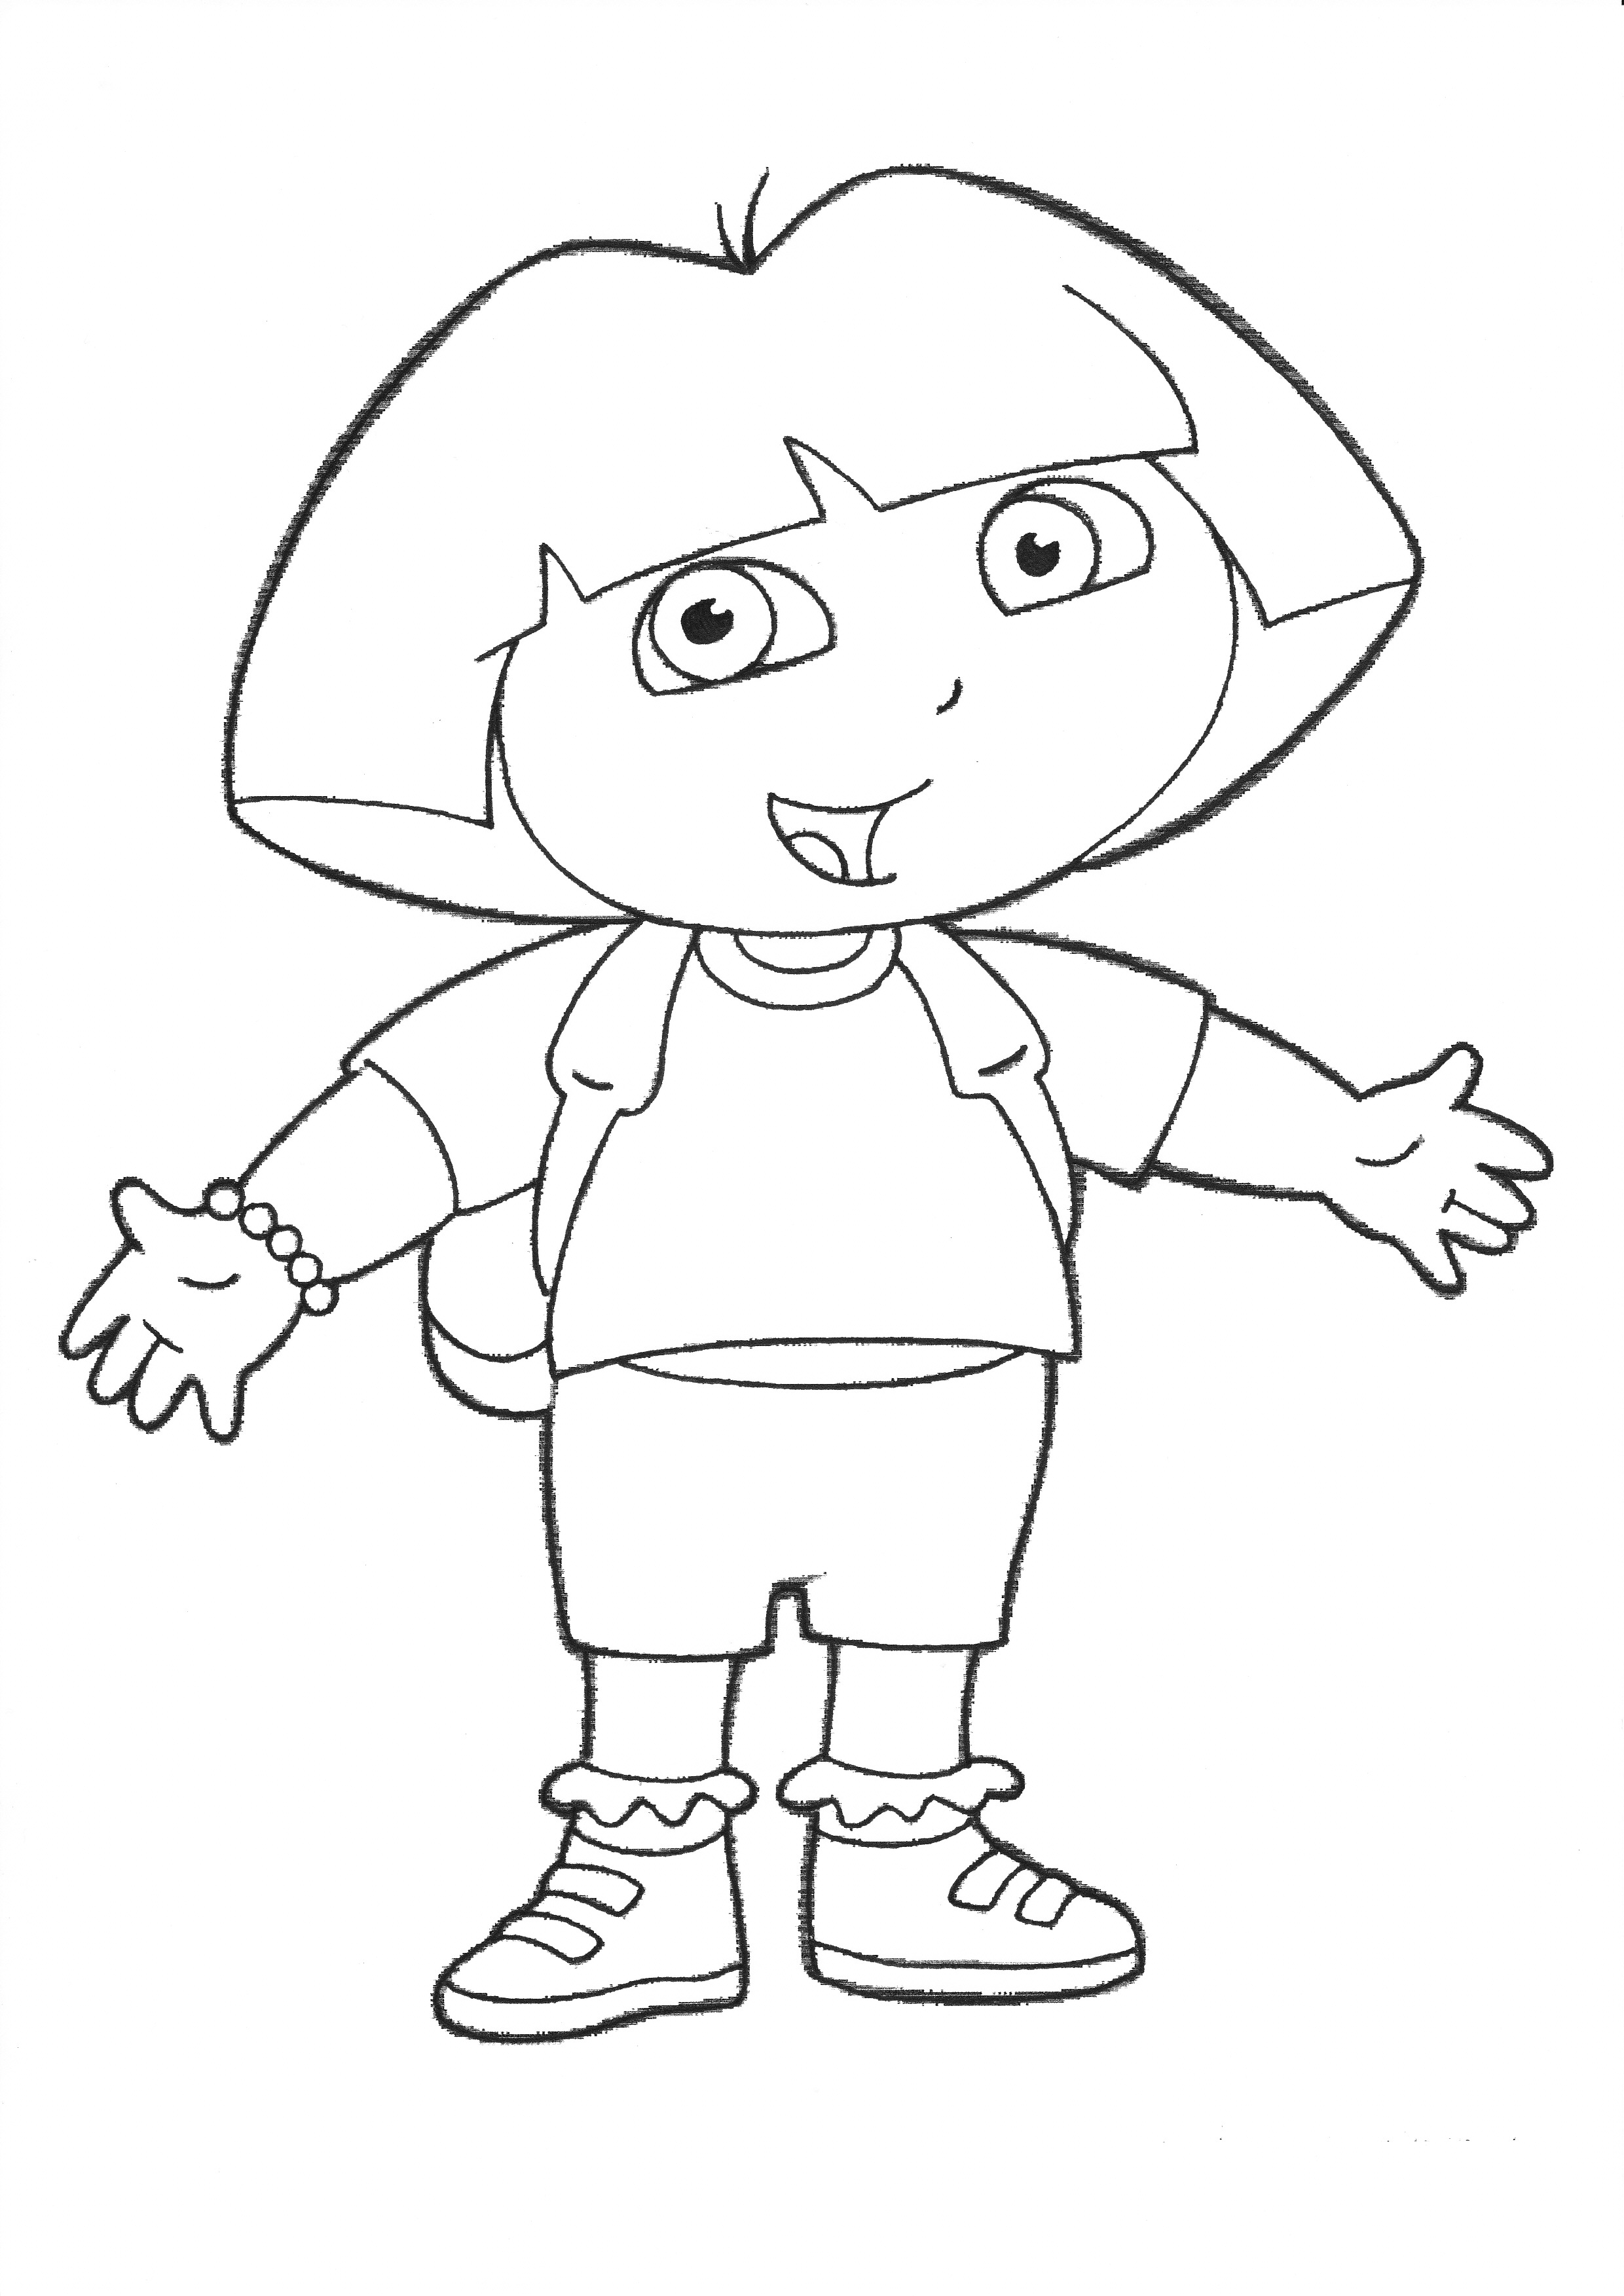 dora drawing pictures dora drawing pictures at getdrawings free download drawing dora pictures 1 1